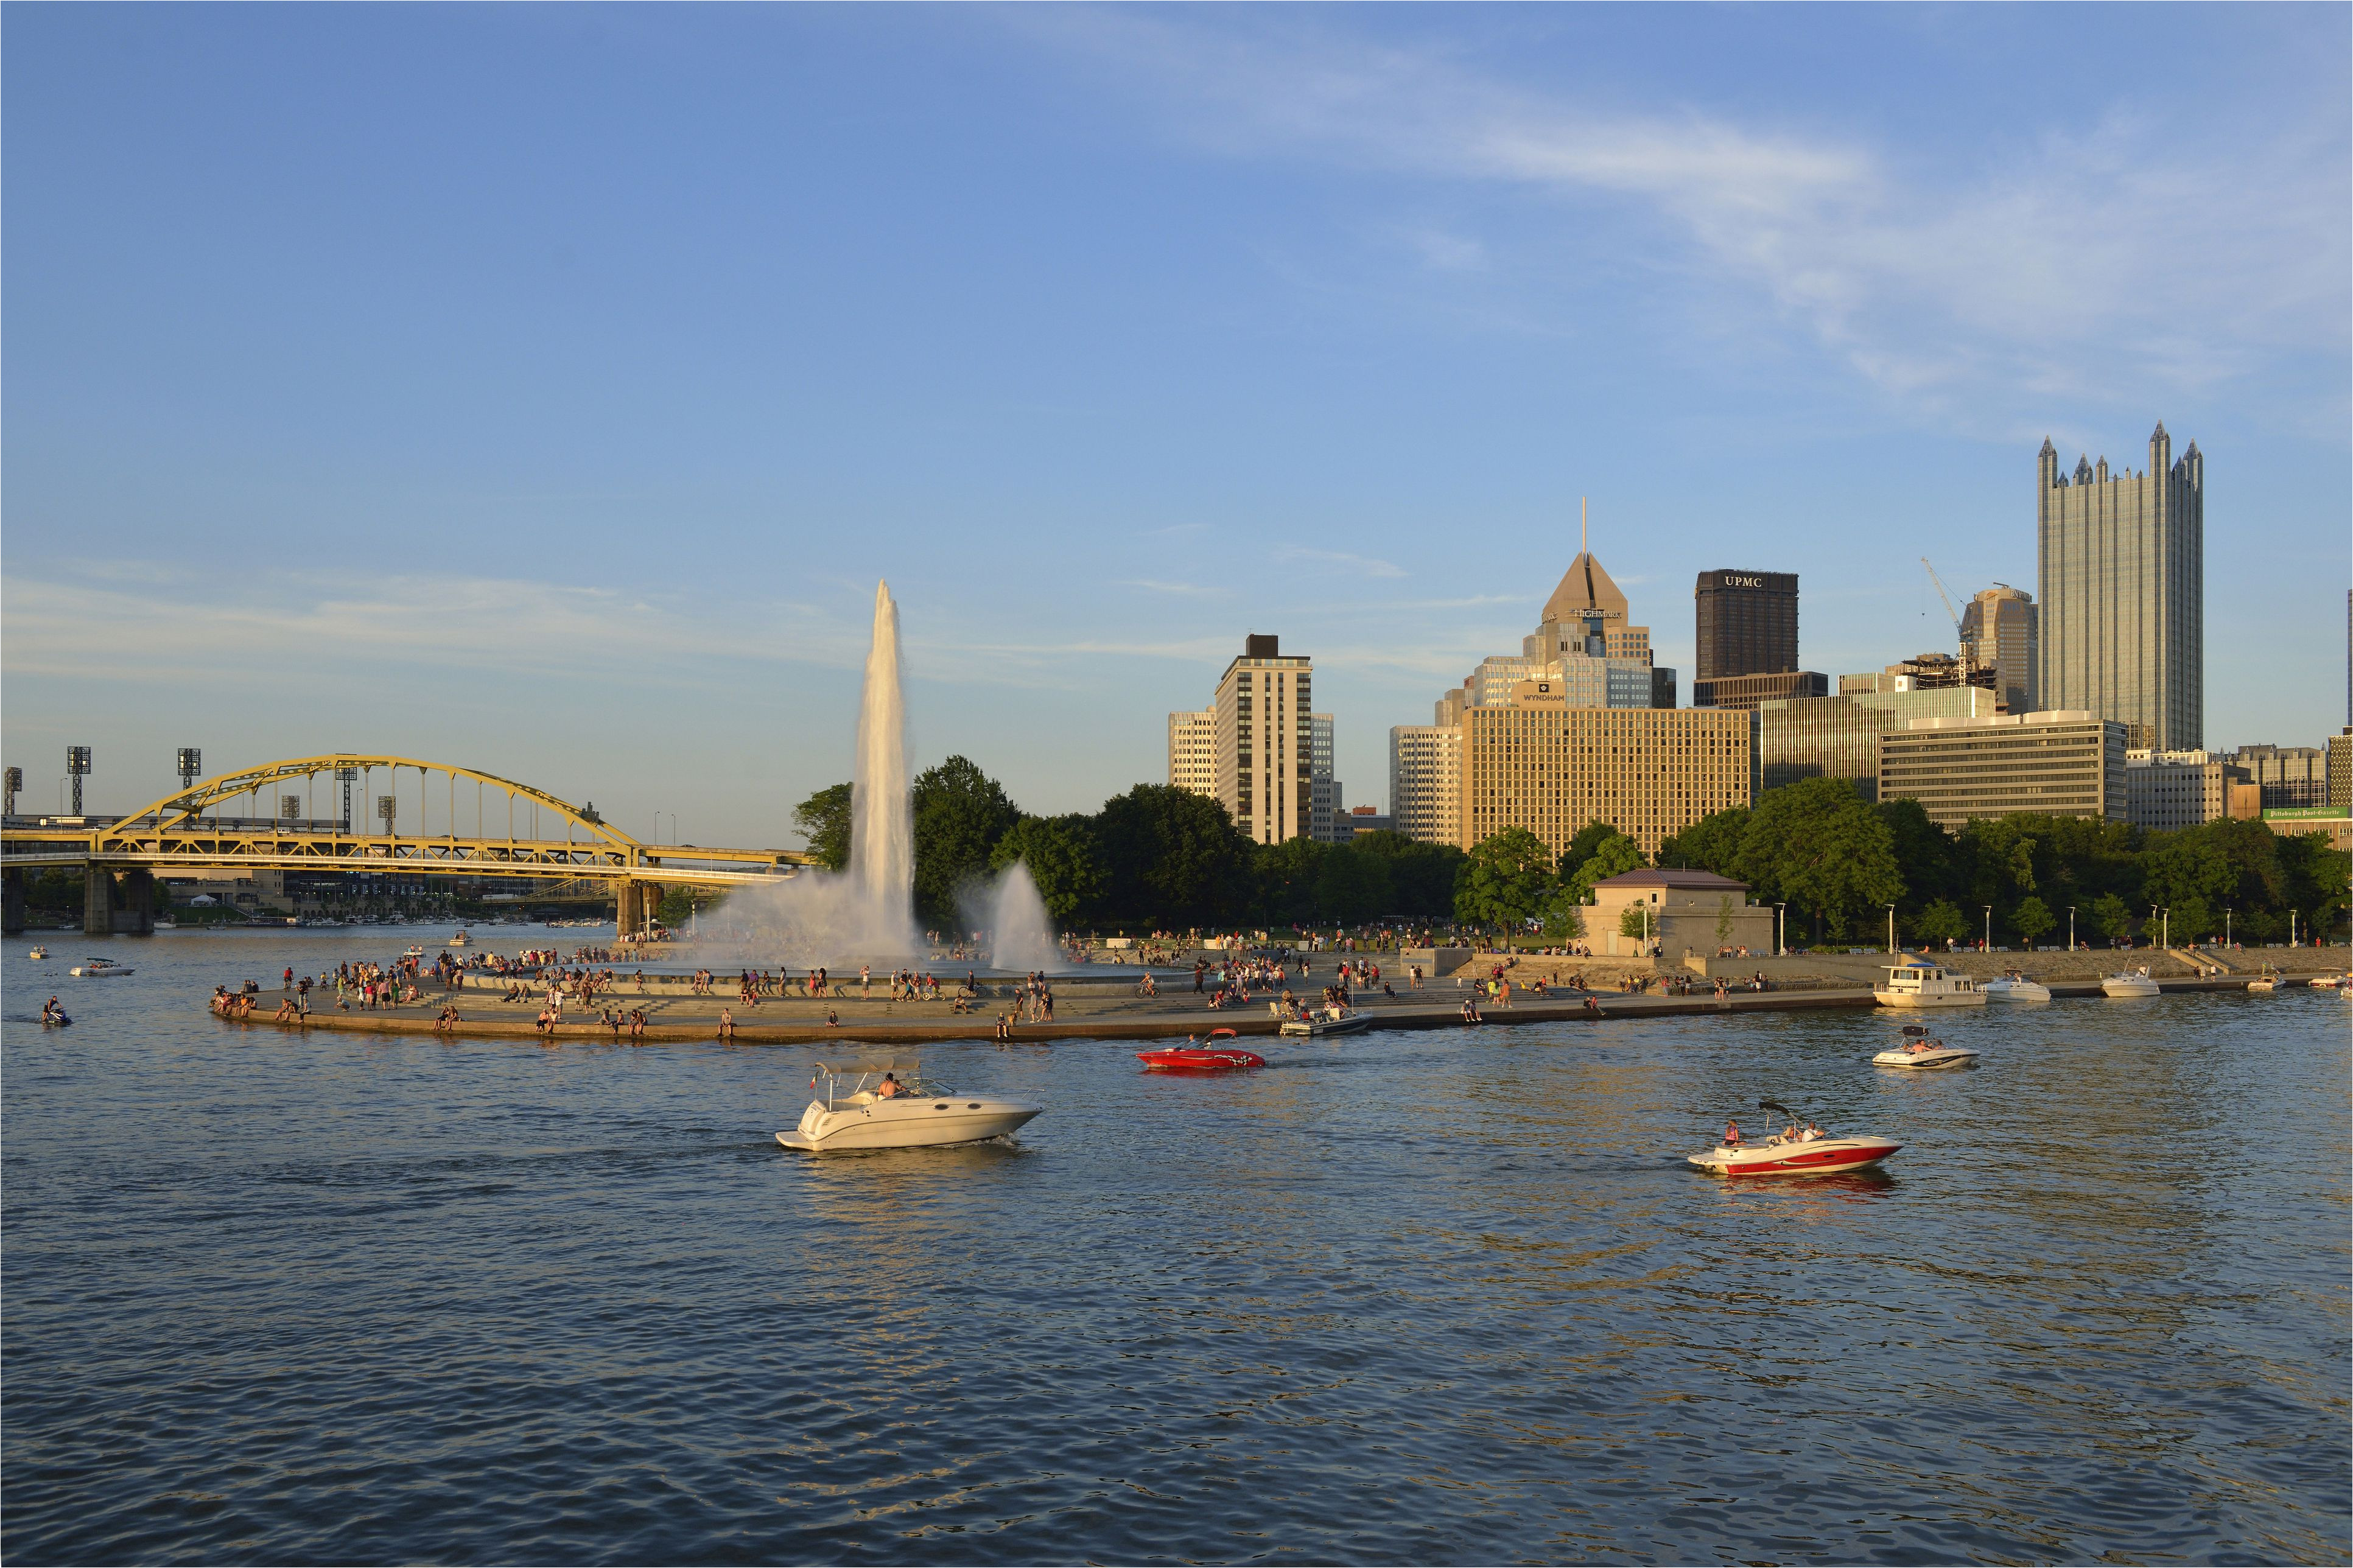 boats in front of point state park and fountain pittsburgh pennsylvania usa 586900533 5937686f5f9b58d58ac206d5 jpg